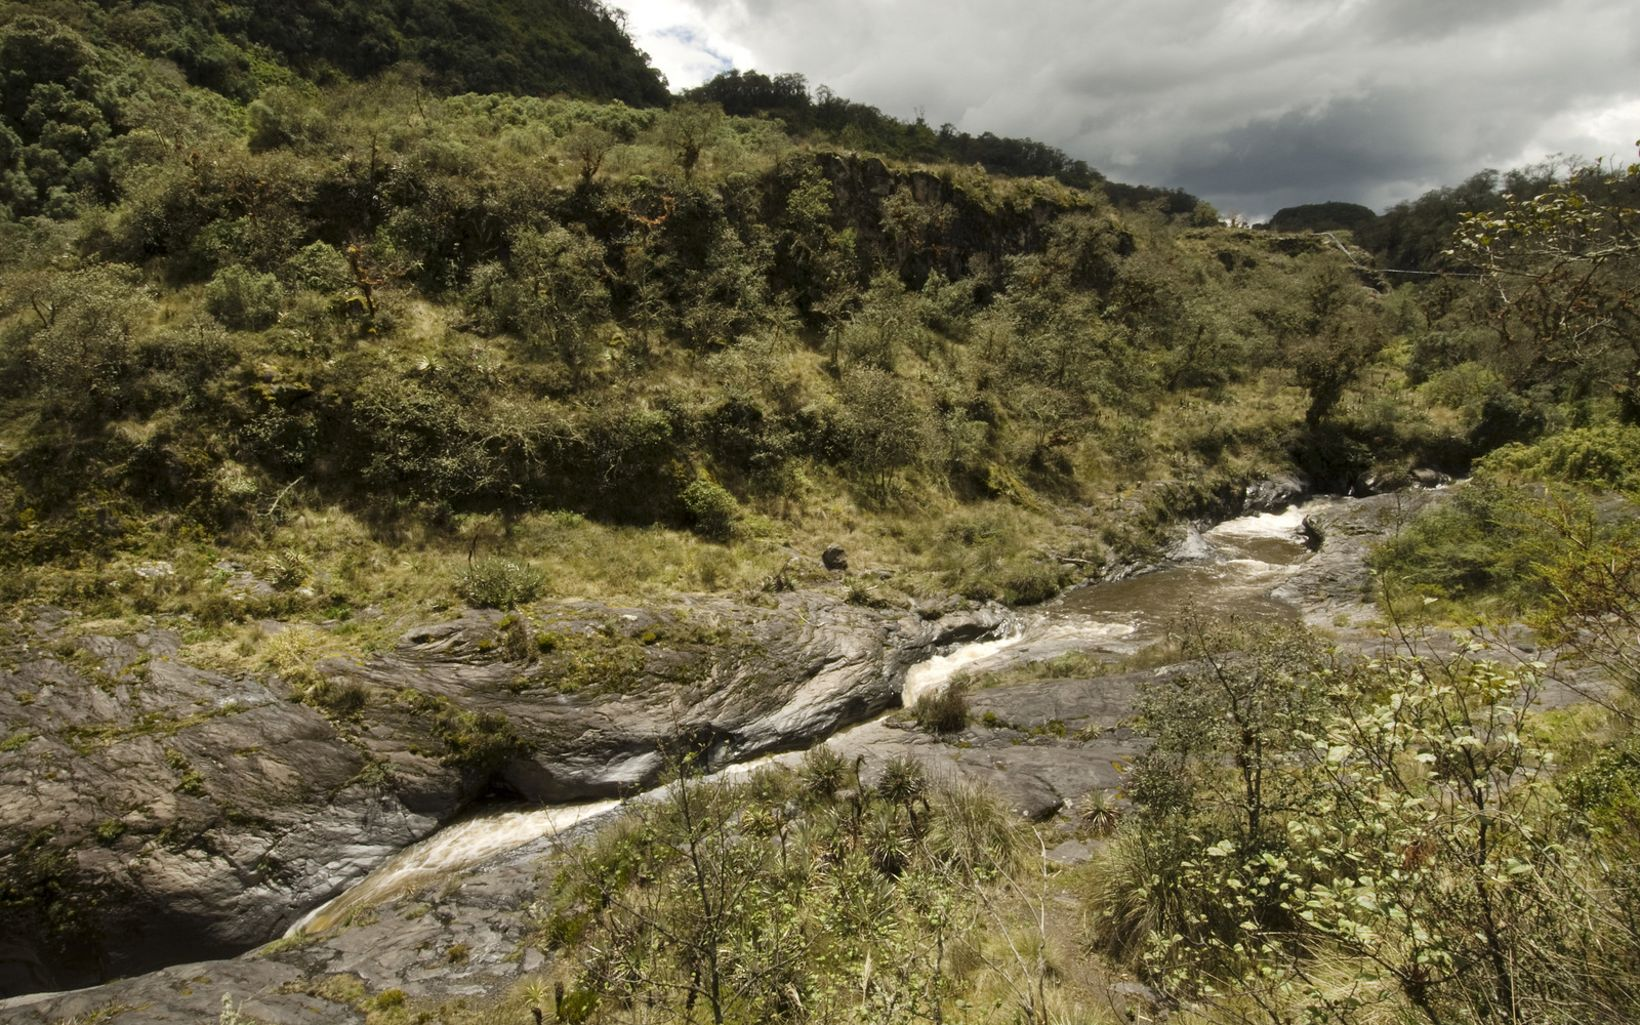 Pita River (a major water source for Quito, capital of Ecuador) flowing through the Cotopaxi National Park buffer zone at Hacienda Santa Rita, a ecotourism resort and associated private ecological reserve In the Andean highlands of Ecuador. The Nature Conservancy partners with Fundacion Paramo, an non-profit organization of private landowners living in the buffer zone. Fundacion Paramo supports private lands conservation around the national park, including the Santa Rita private reserve.  PHOTO CREDIT: ©Bridget Besaw